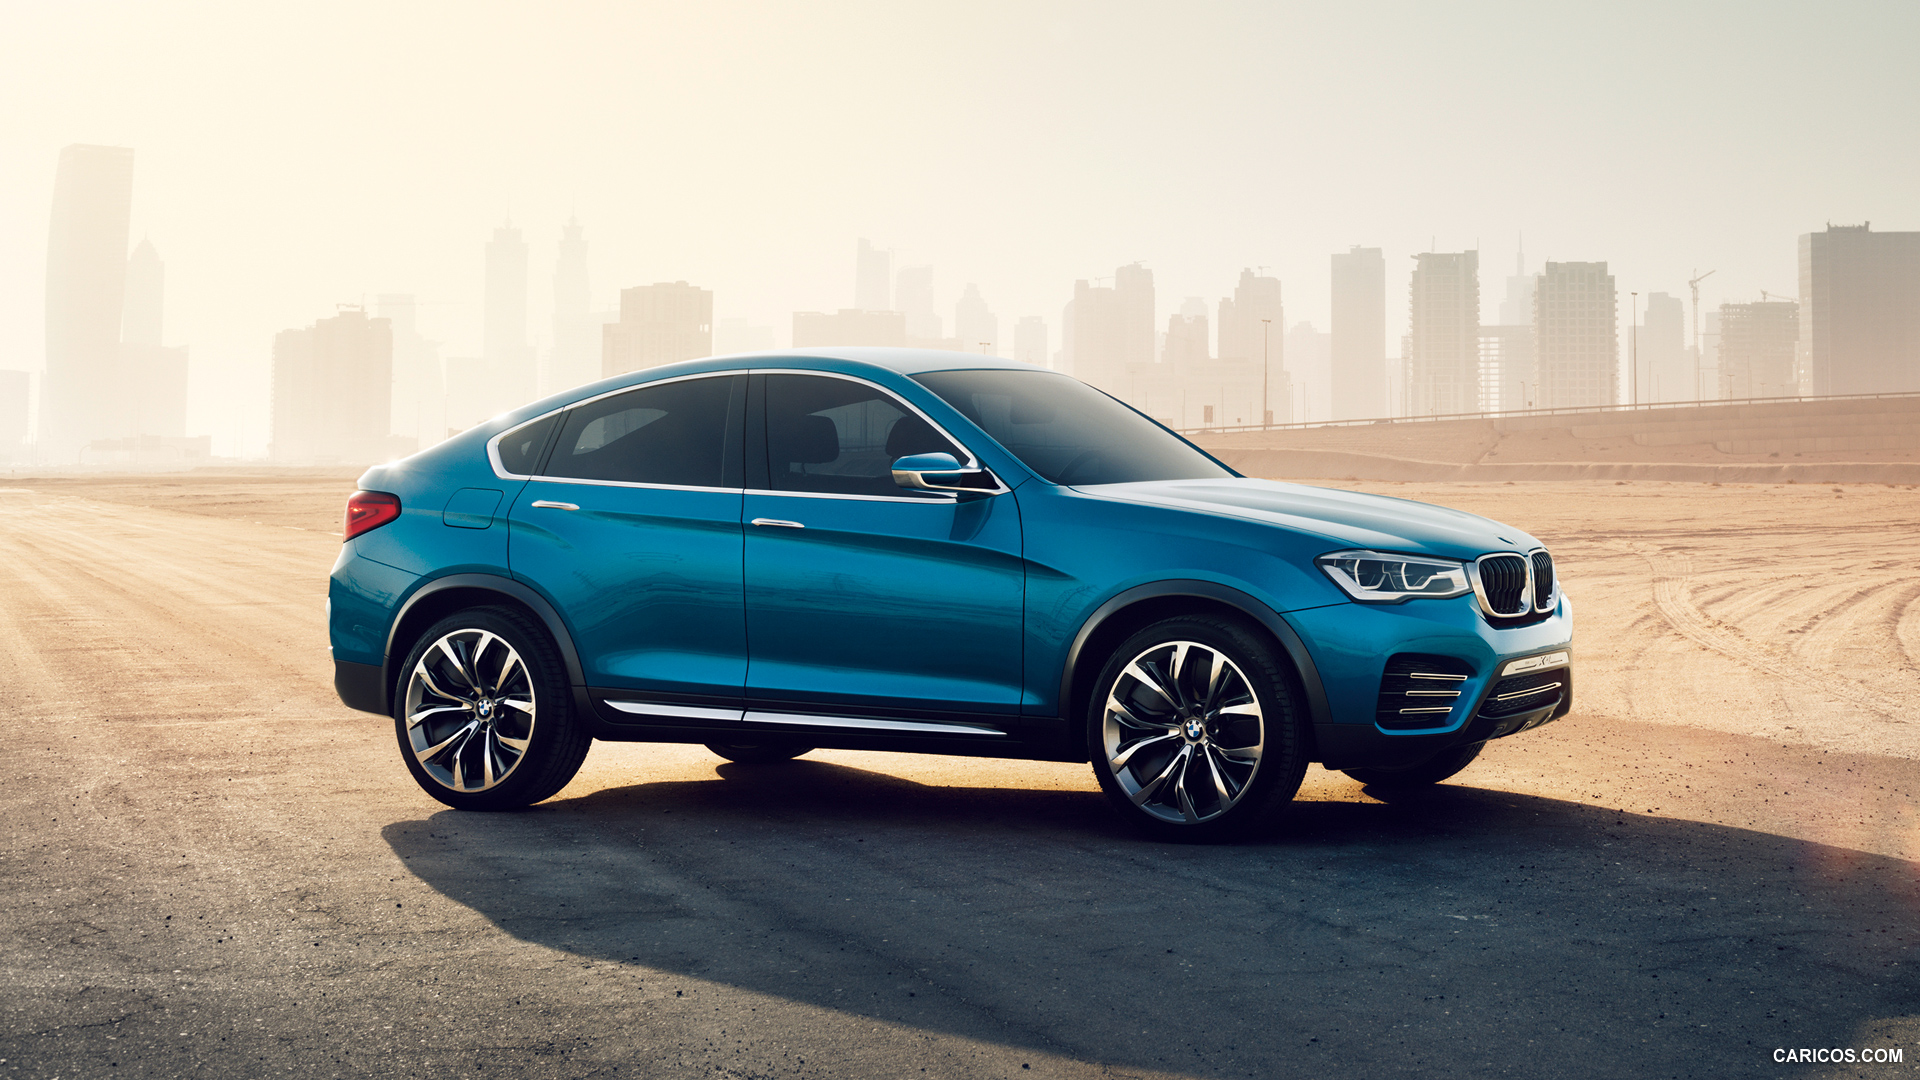 1920x1080 - BMW X4 Wallpapers 24